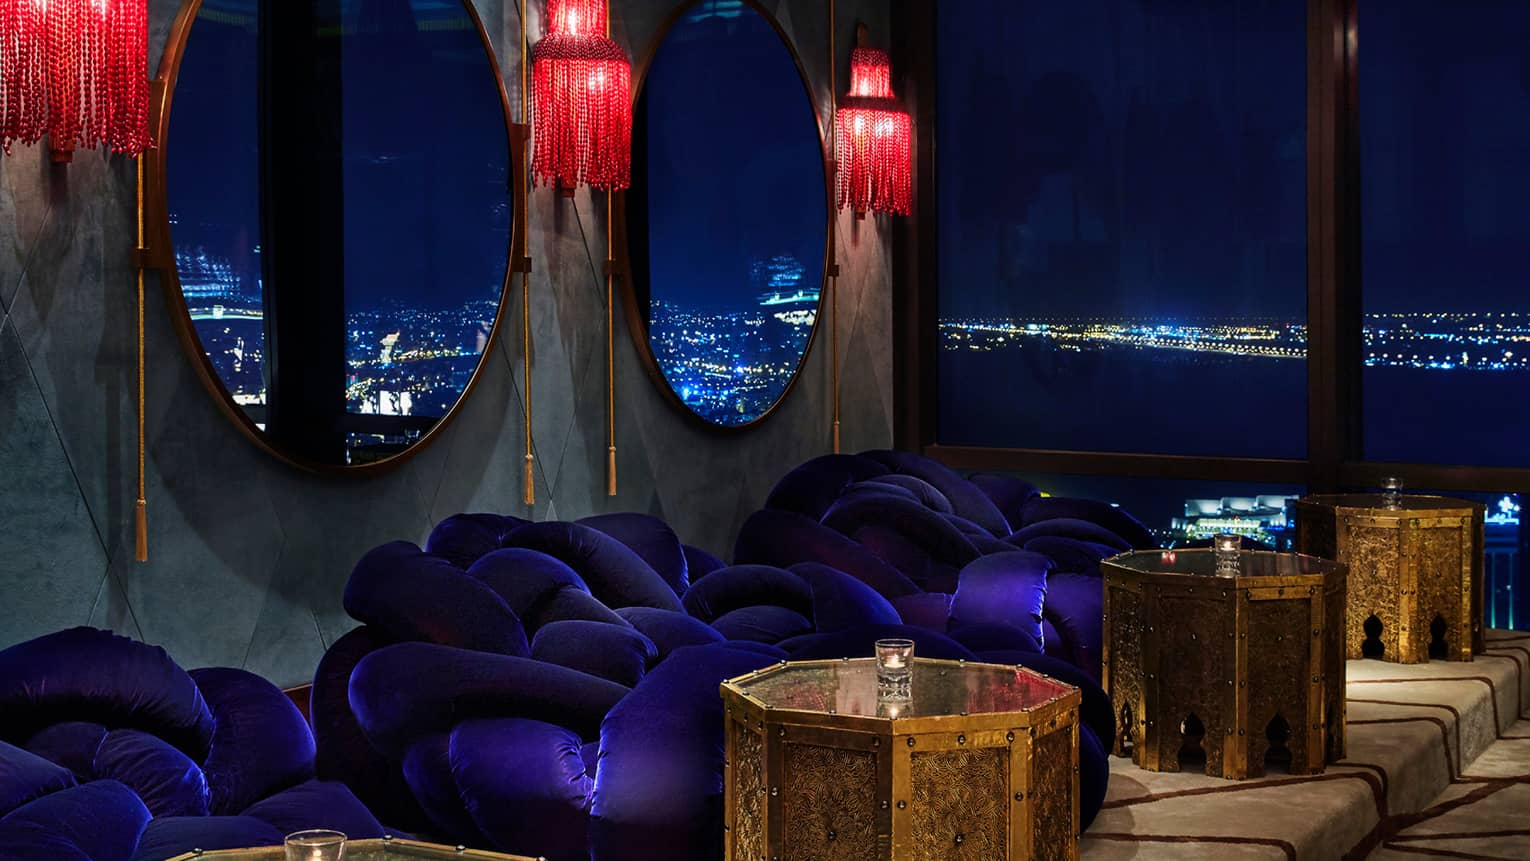 Close-up of blue velvet plush round chairs under red lamps, mirrors, gold tables, city lights